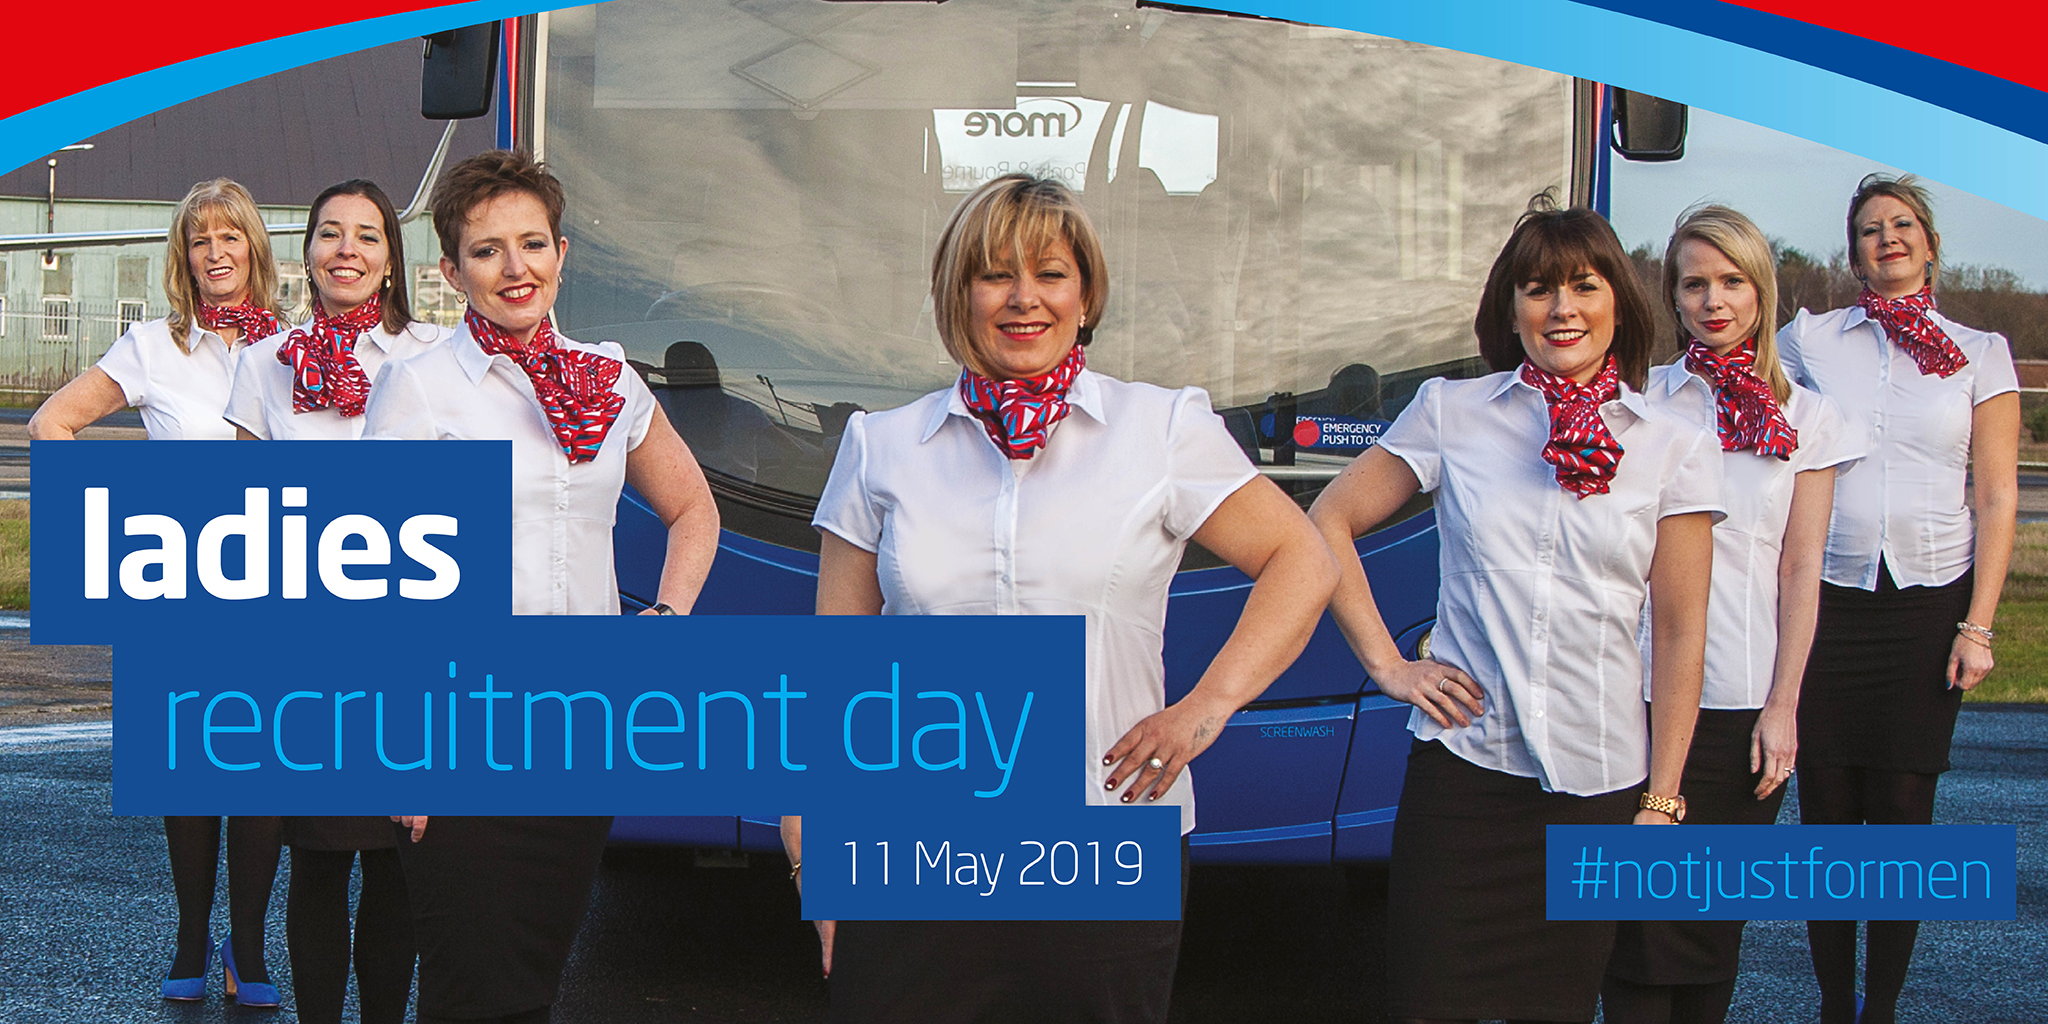 Image with ladies standing in front of a bus with text overlaid saying 'ladies recruitment day'